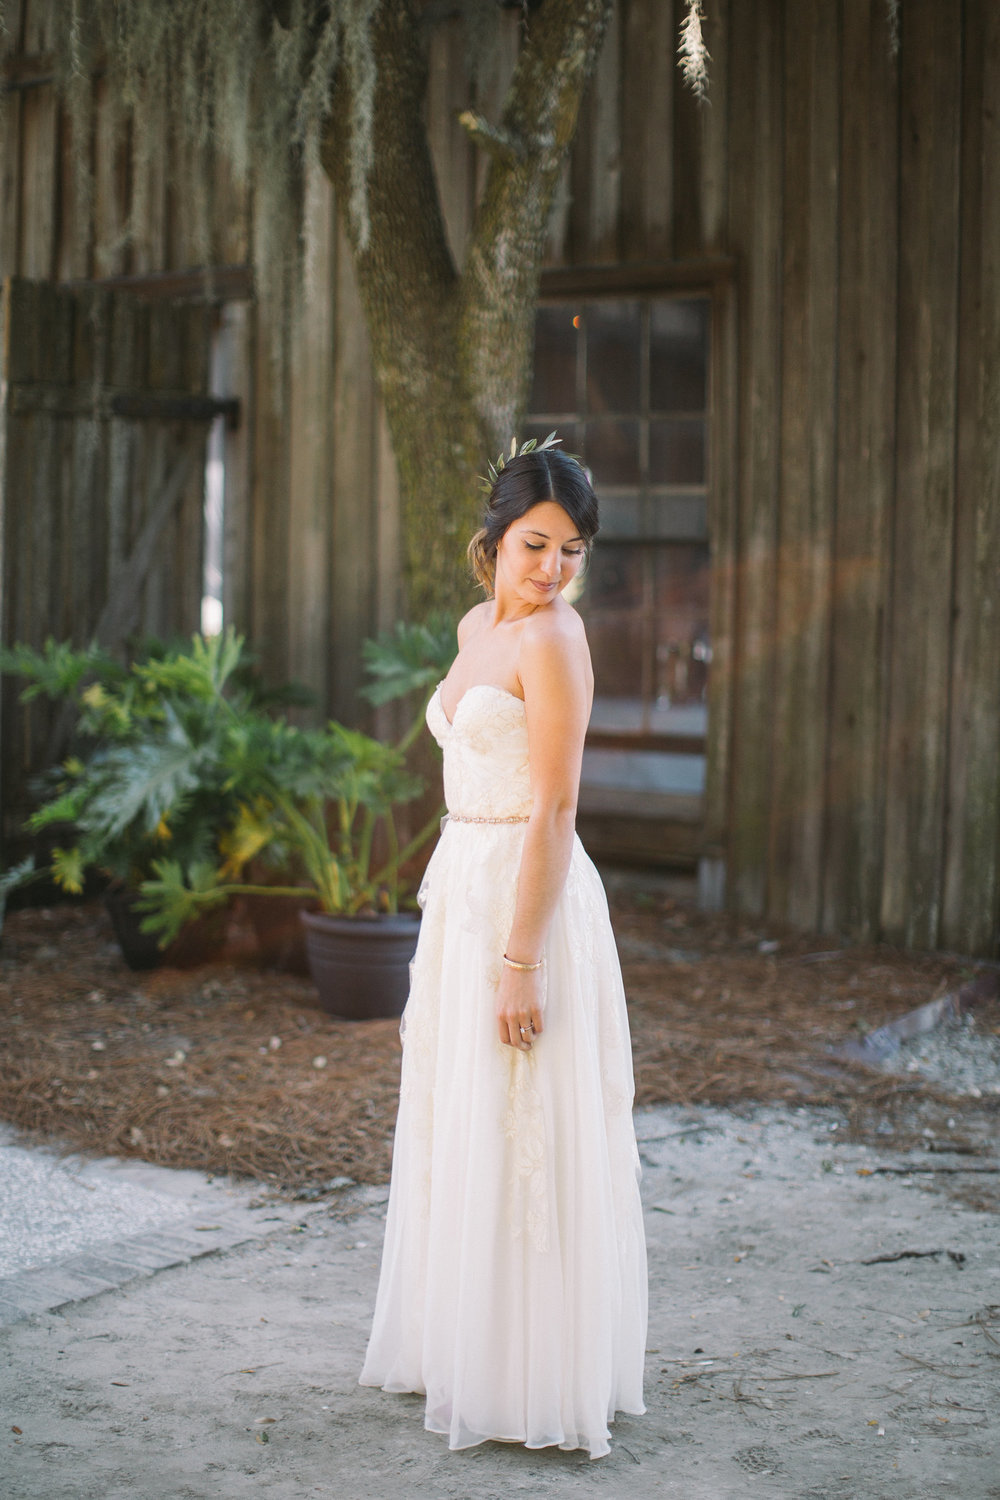 falyn-sy-branches-wedding-co-boone-hall-plantation-wedding-charleston-wedding-cotton-dock-wedding-sarah-seven-cascade-ivory-and-beau-bridal-boutique-savannah-wedding-dresses-savannah-bridal-gowns-charleston-weddings-5.jpg